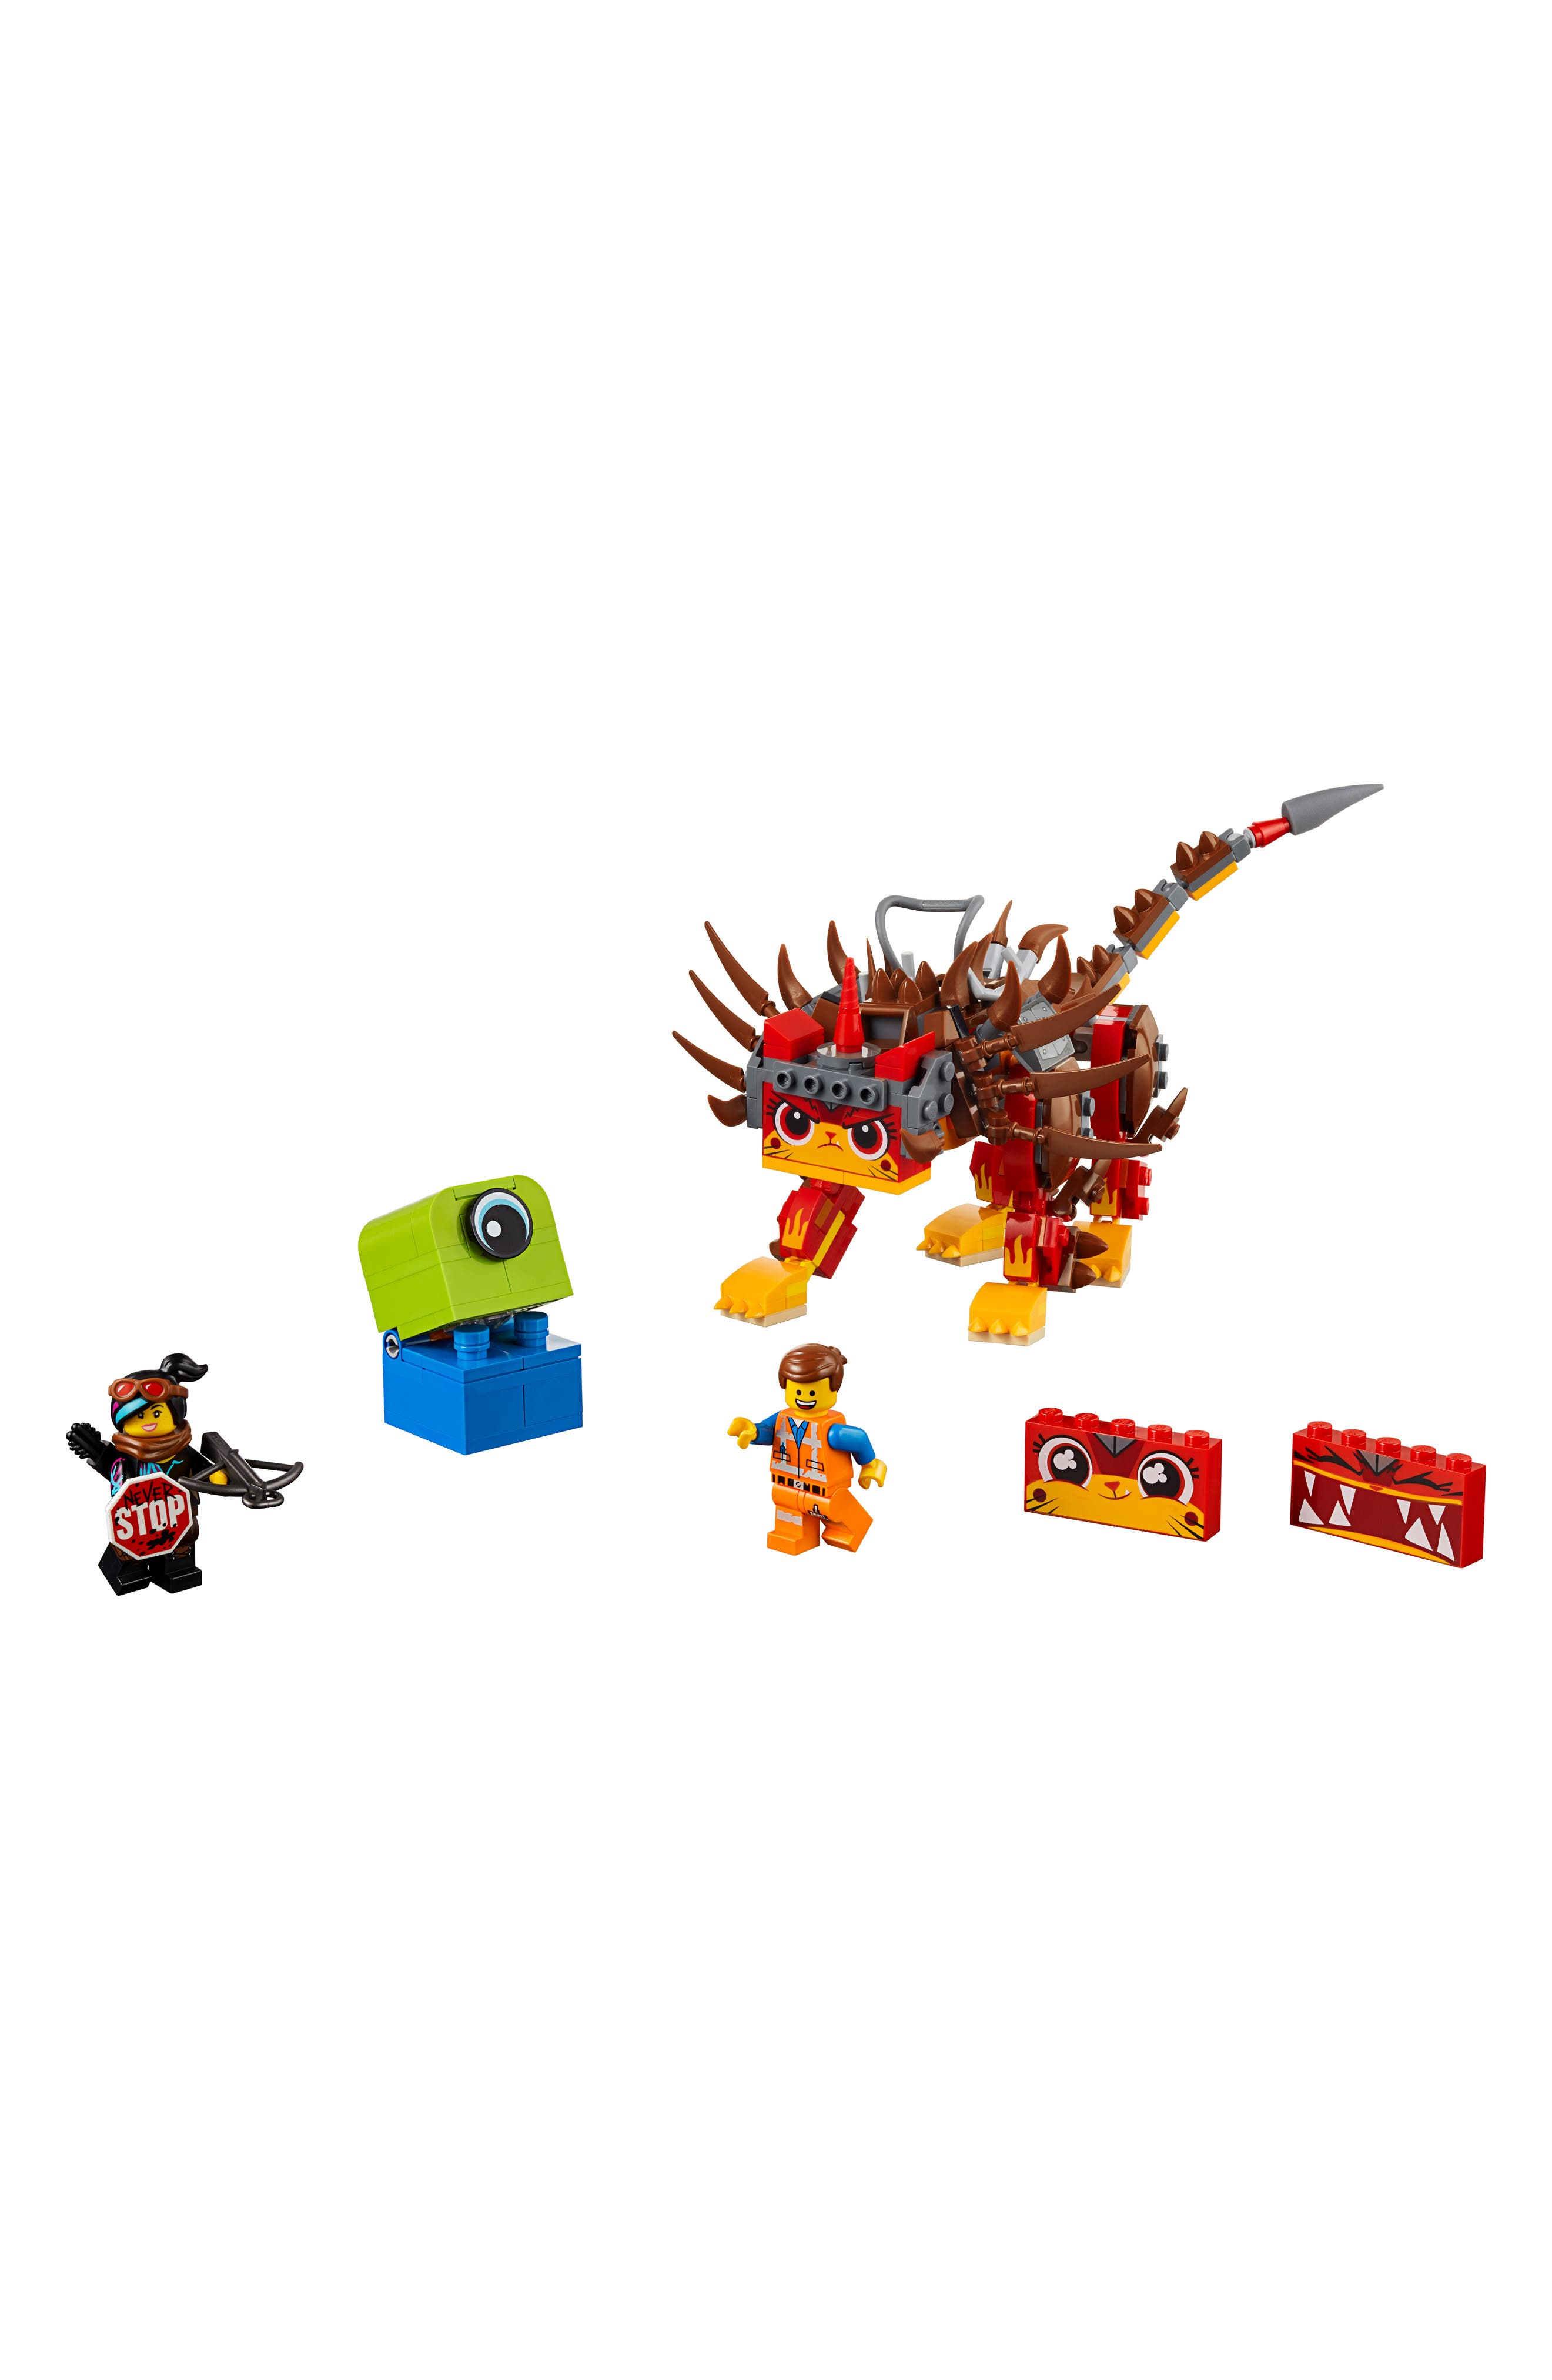 LEGO<SUP>®</SUP> The LEGO<sup>®</sup> Movie 2 UItrakatty & Warrior Lucy Play Set - 70827, Main, color, 960